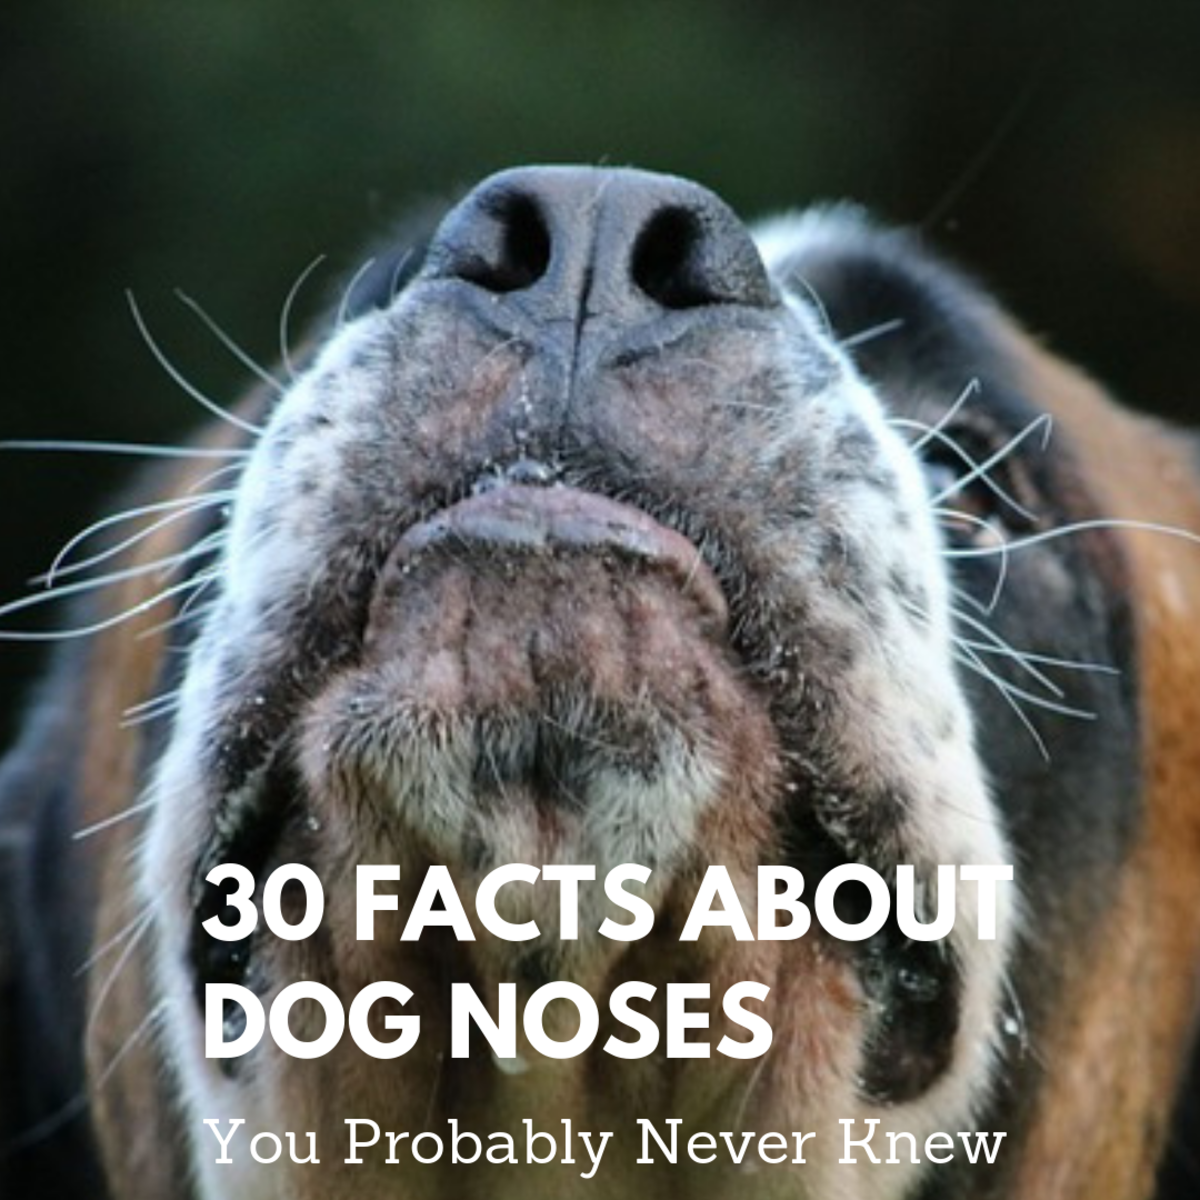 30 Facts About Dog Noses You Probably Didn't Know Until Now